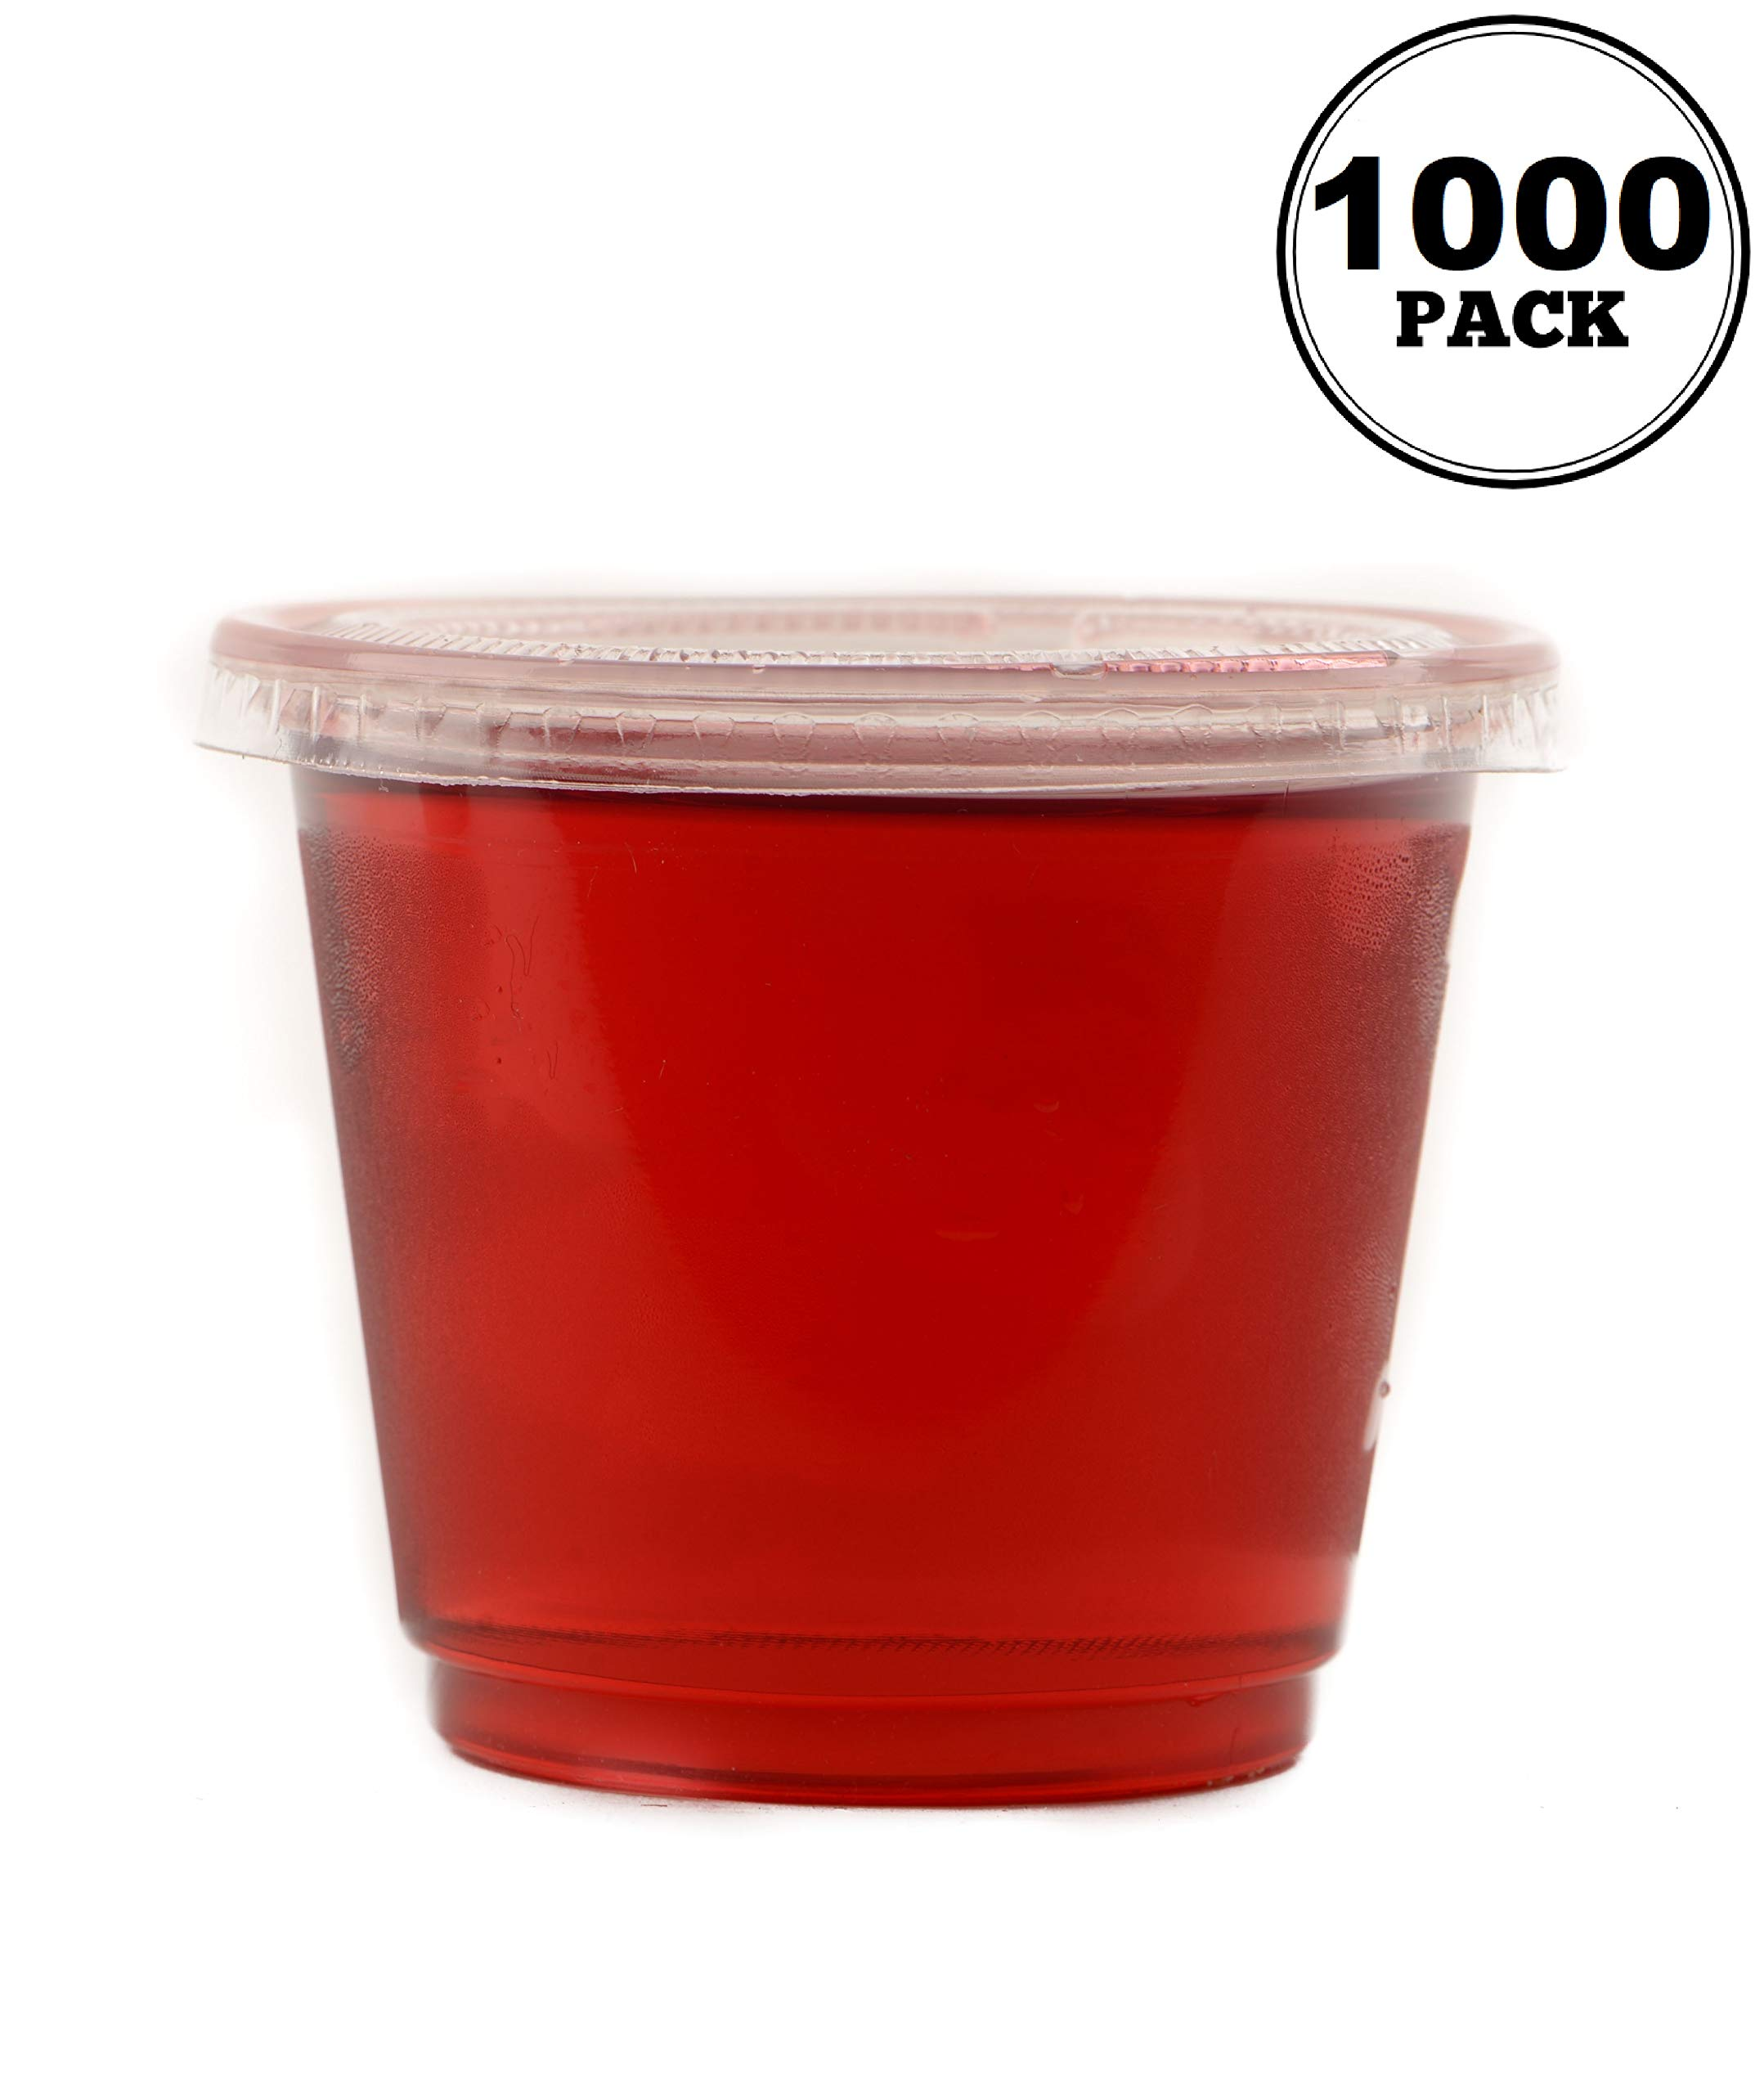 EcoQuality [1000 Pack] 4 Oz Leak Proof Plastic Condiment Souffle Containers with Lids - Plastic Portion Cup with Plastic Lid Perfect for Sauces, Samples, Slime, Jello Shot, Food Storage & More! by EcoQuality